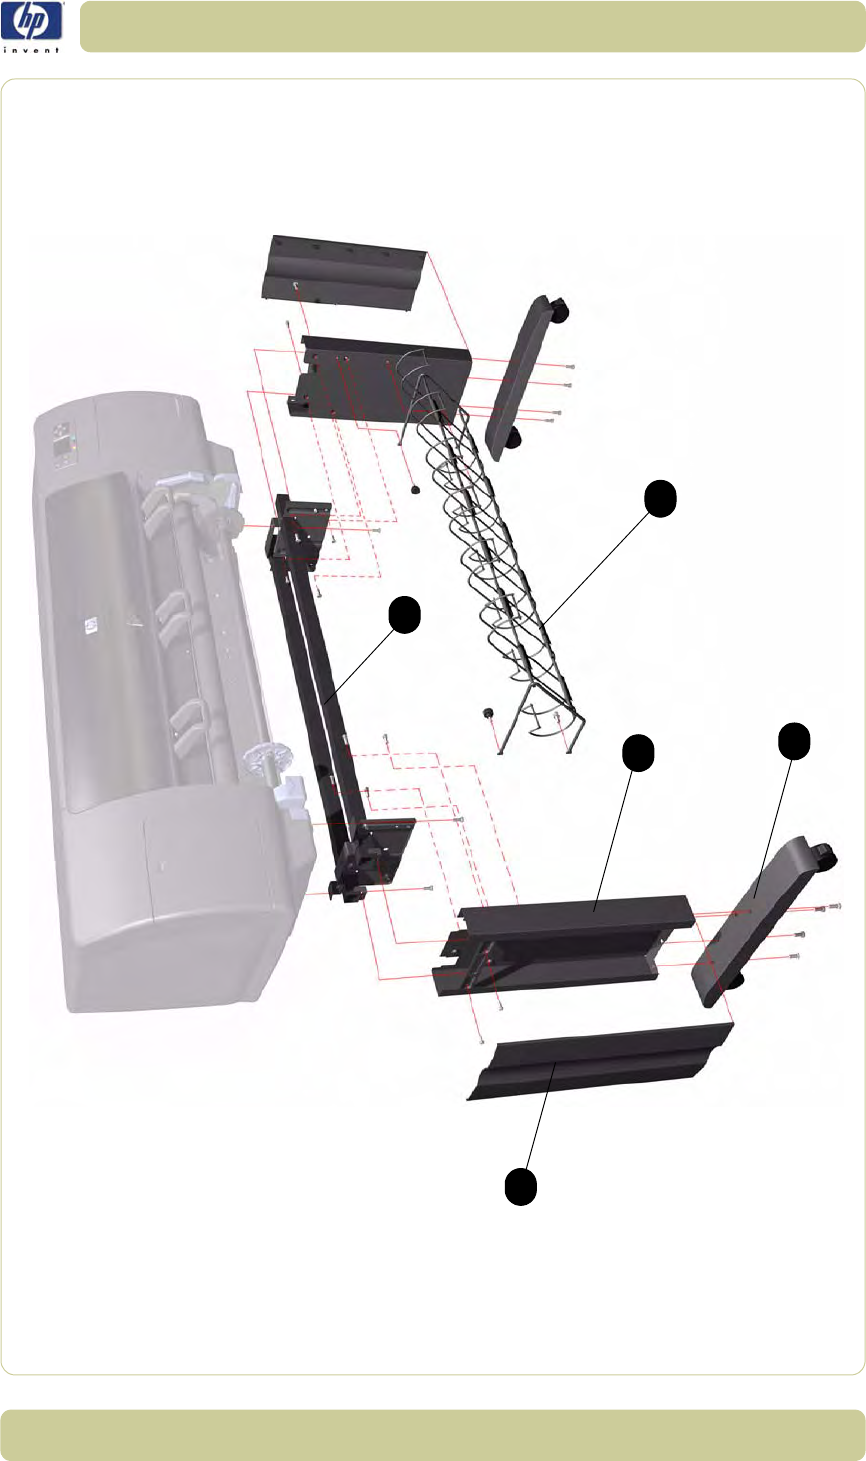 q1273 60096 hp new left side trim assembly attaches to the left rh dectrader com hp designjet 4000 service manual hp designjet 4000ps service manual